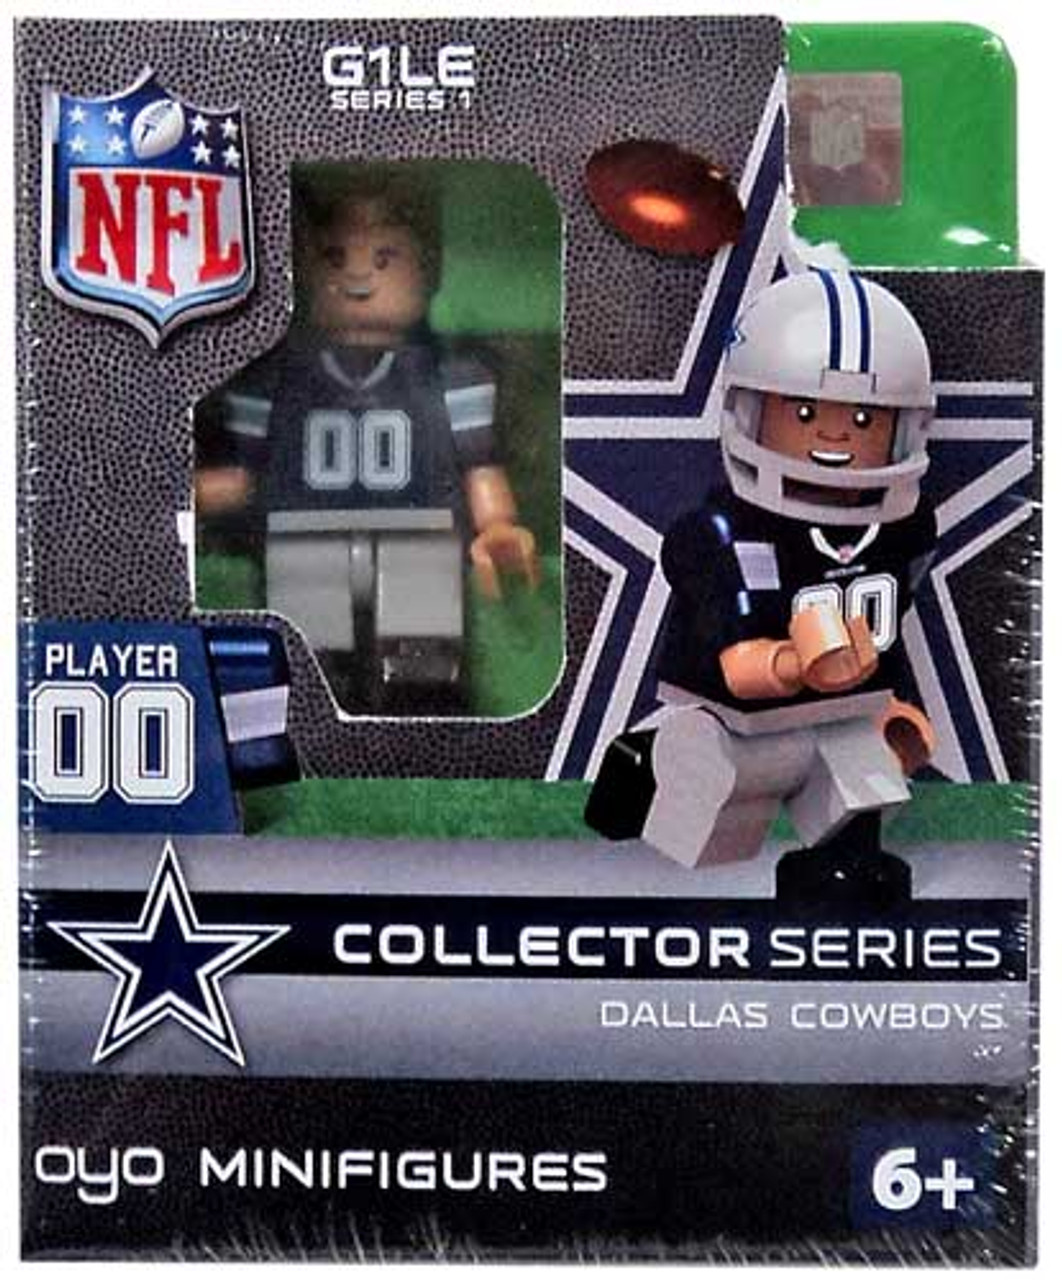 NFL Generation 1 Series 1 Dallas Cowboys Collector Series Figure Minifigure